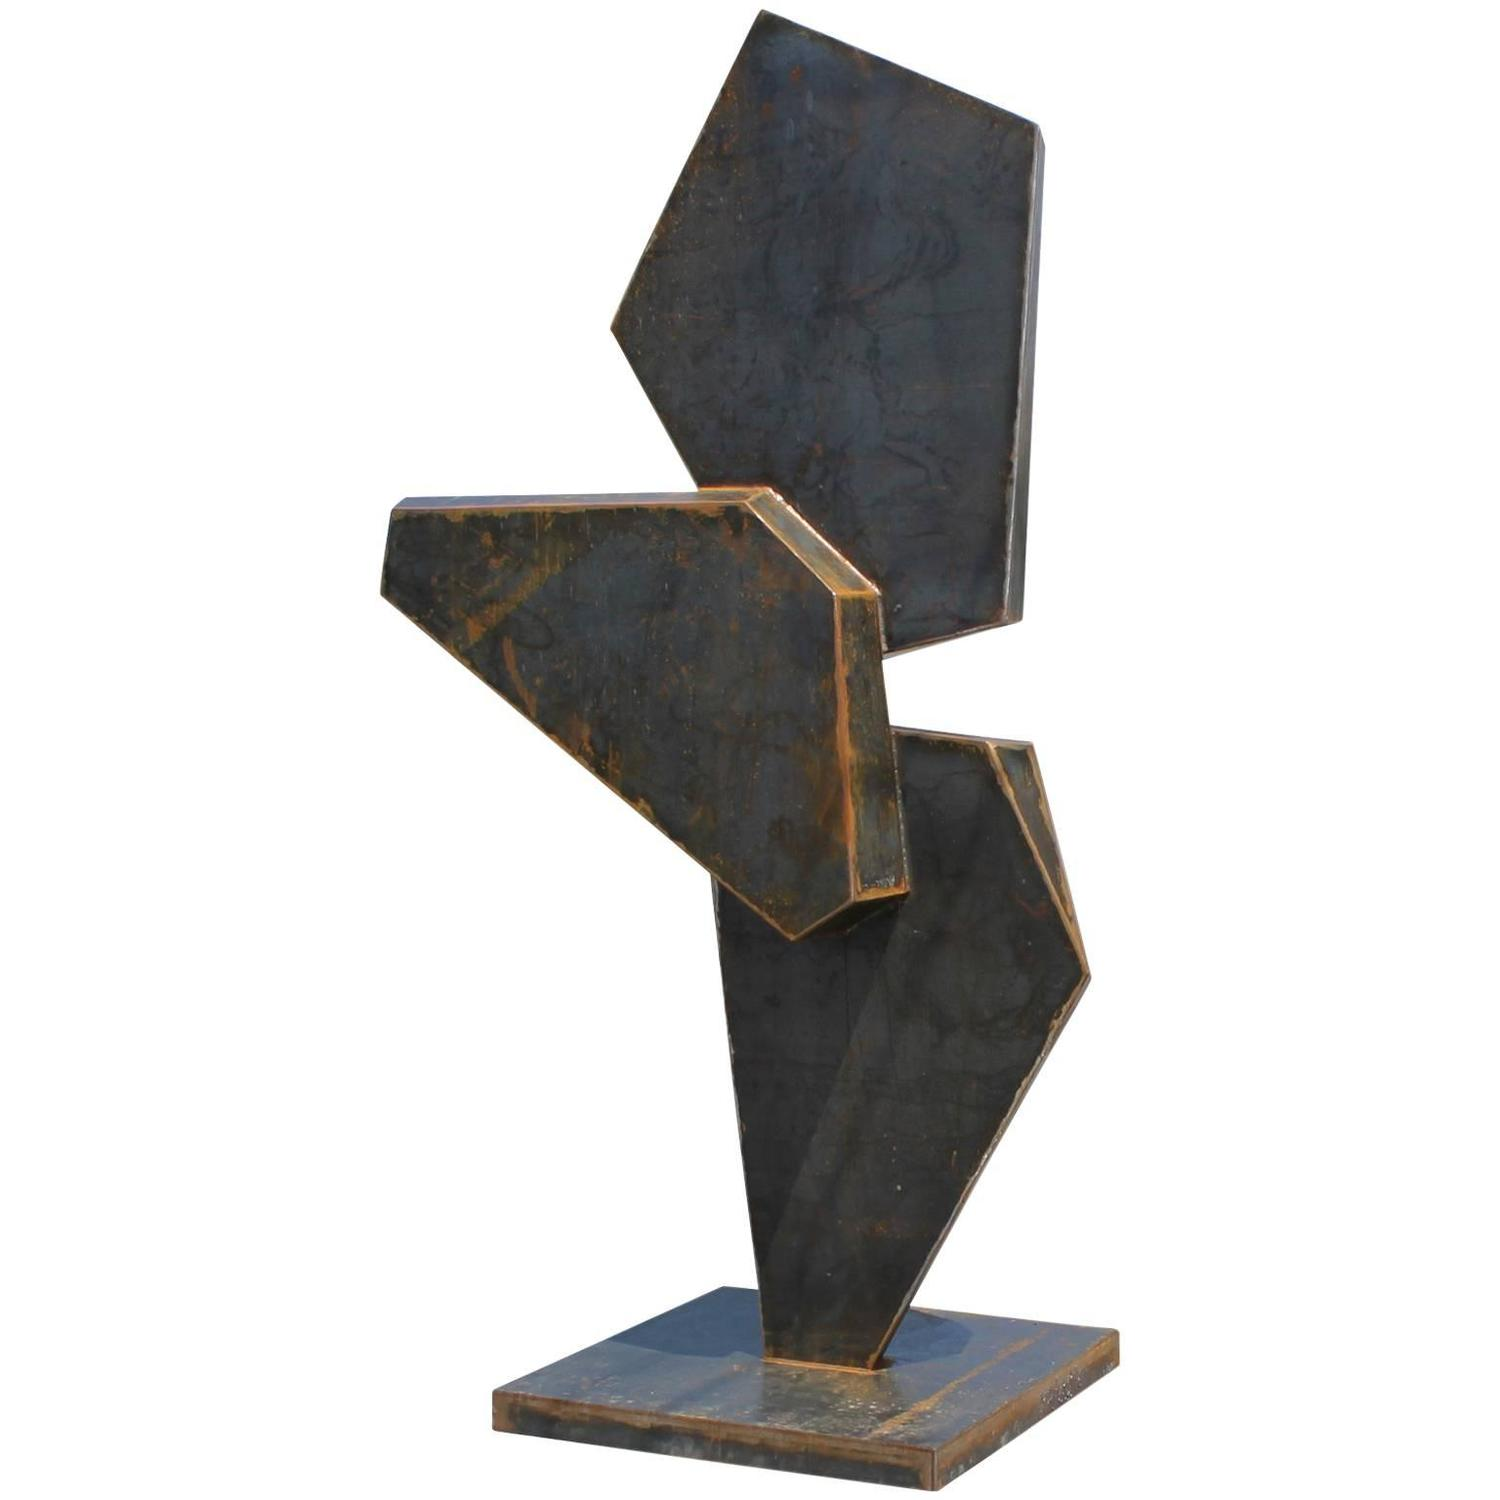 monumental stunning geometric corten steel sculpture for sale at 1stdibs. Black Bedroom Furniture Sets. Home Design Ideas